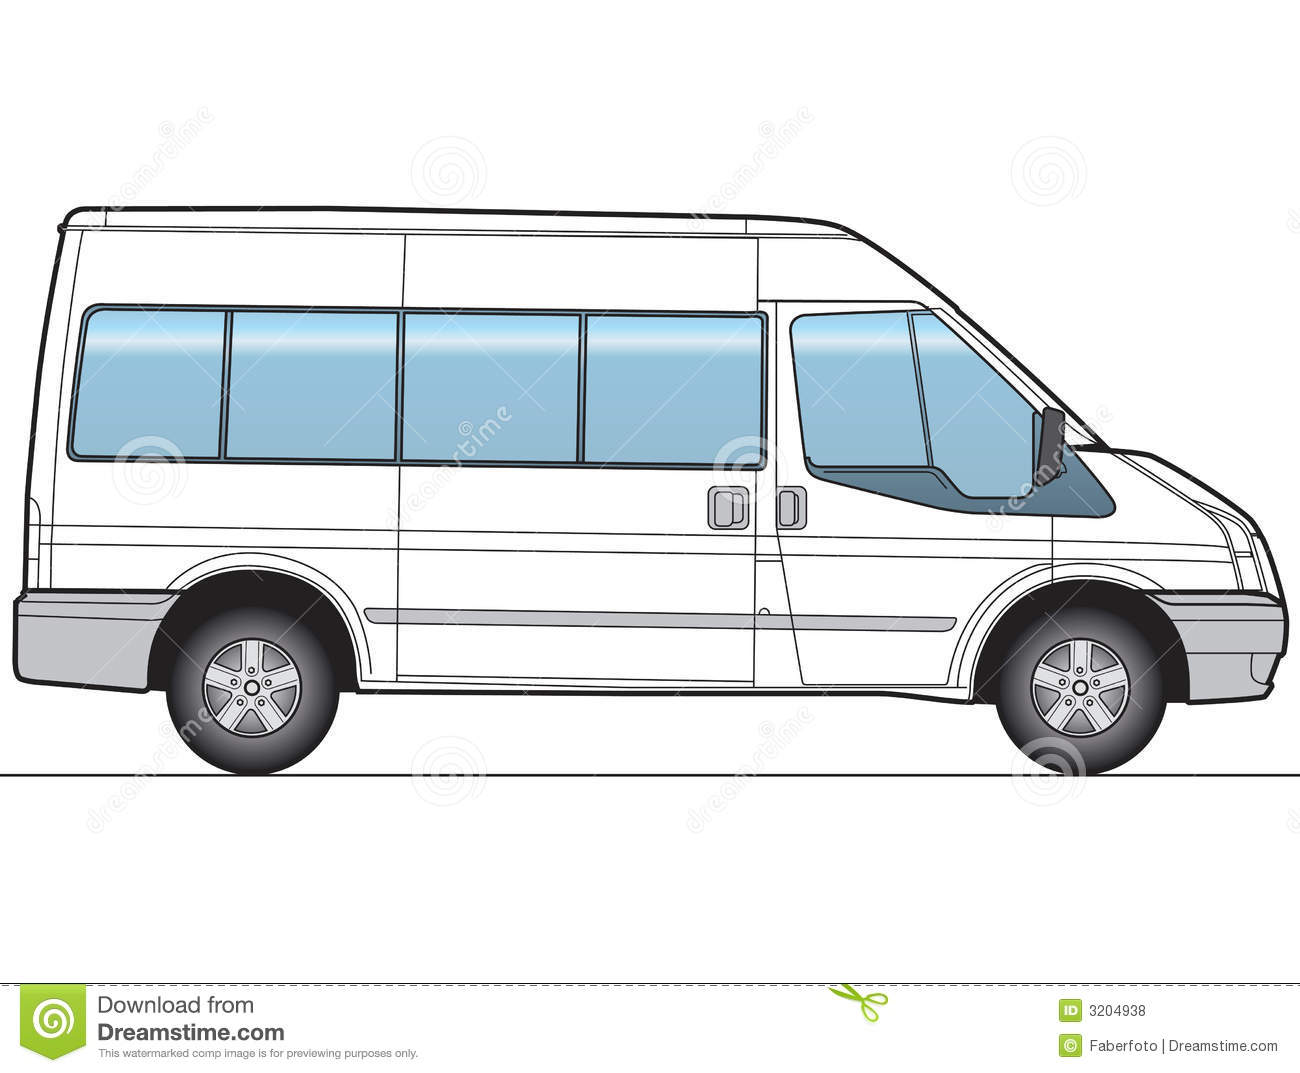 bus drawings illustrations with Royalty Free Stock Photos Minibus Vector Image3204938 on Safety Clip Art as well Pictures Of Transportation Vehicles furthermore 64008 Different Cartoon People Design Vector 03 also 466052261412880831 moreover Watercolor Painting.